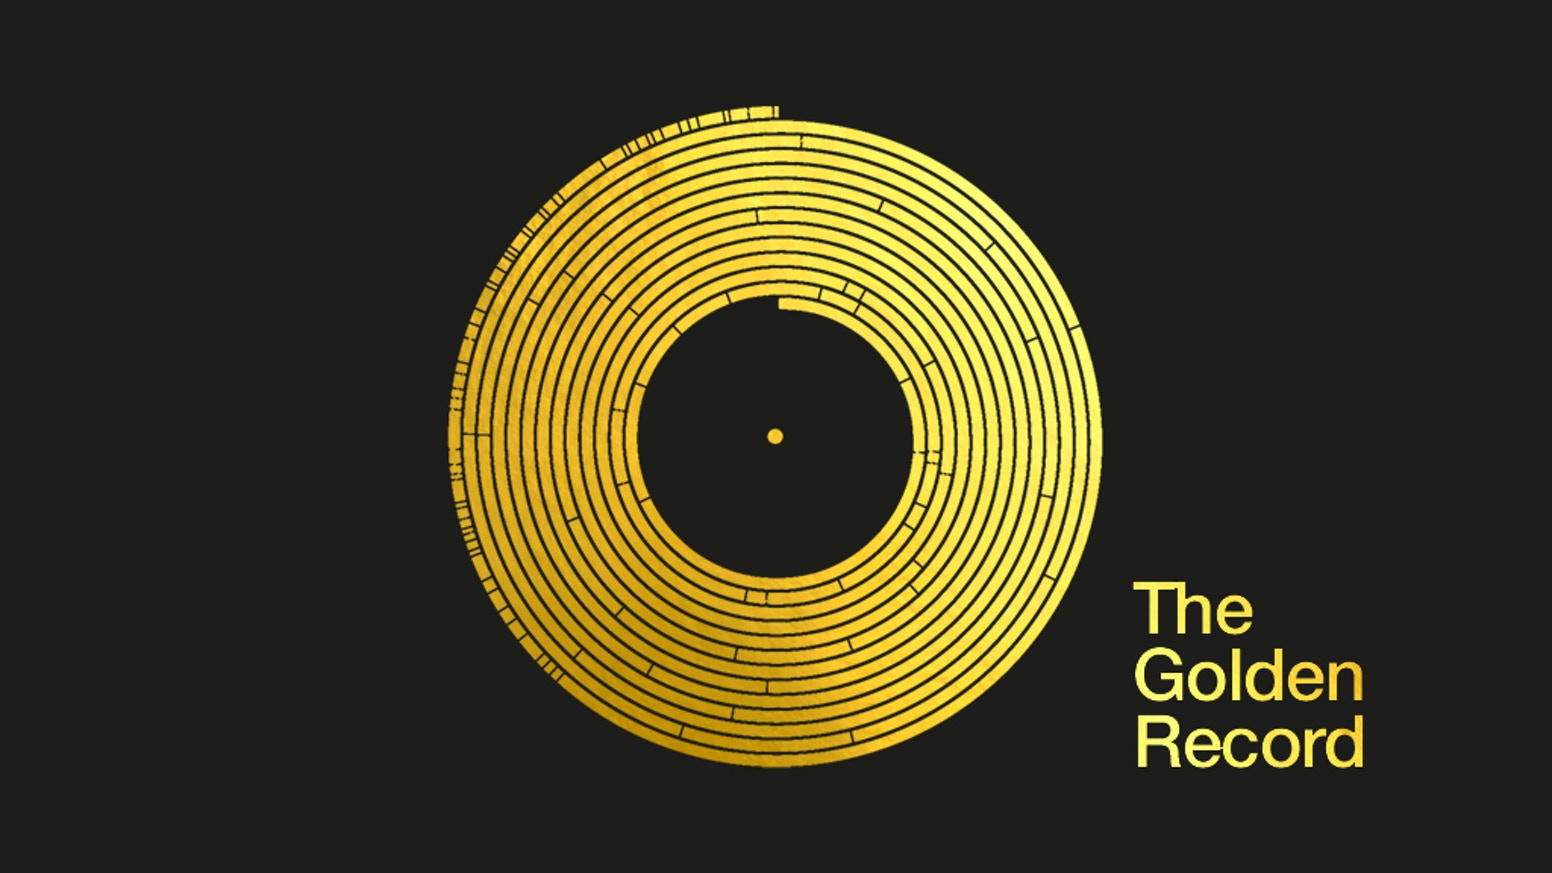 The Golden Record Gold Data Visualisations From Voyager By Alex Further 2 Spacecraft Diagram On Space Probe And Cover Of Reproduced Here As Printed